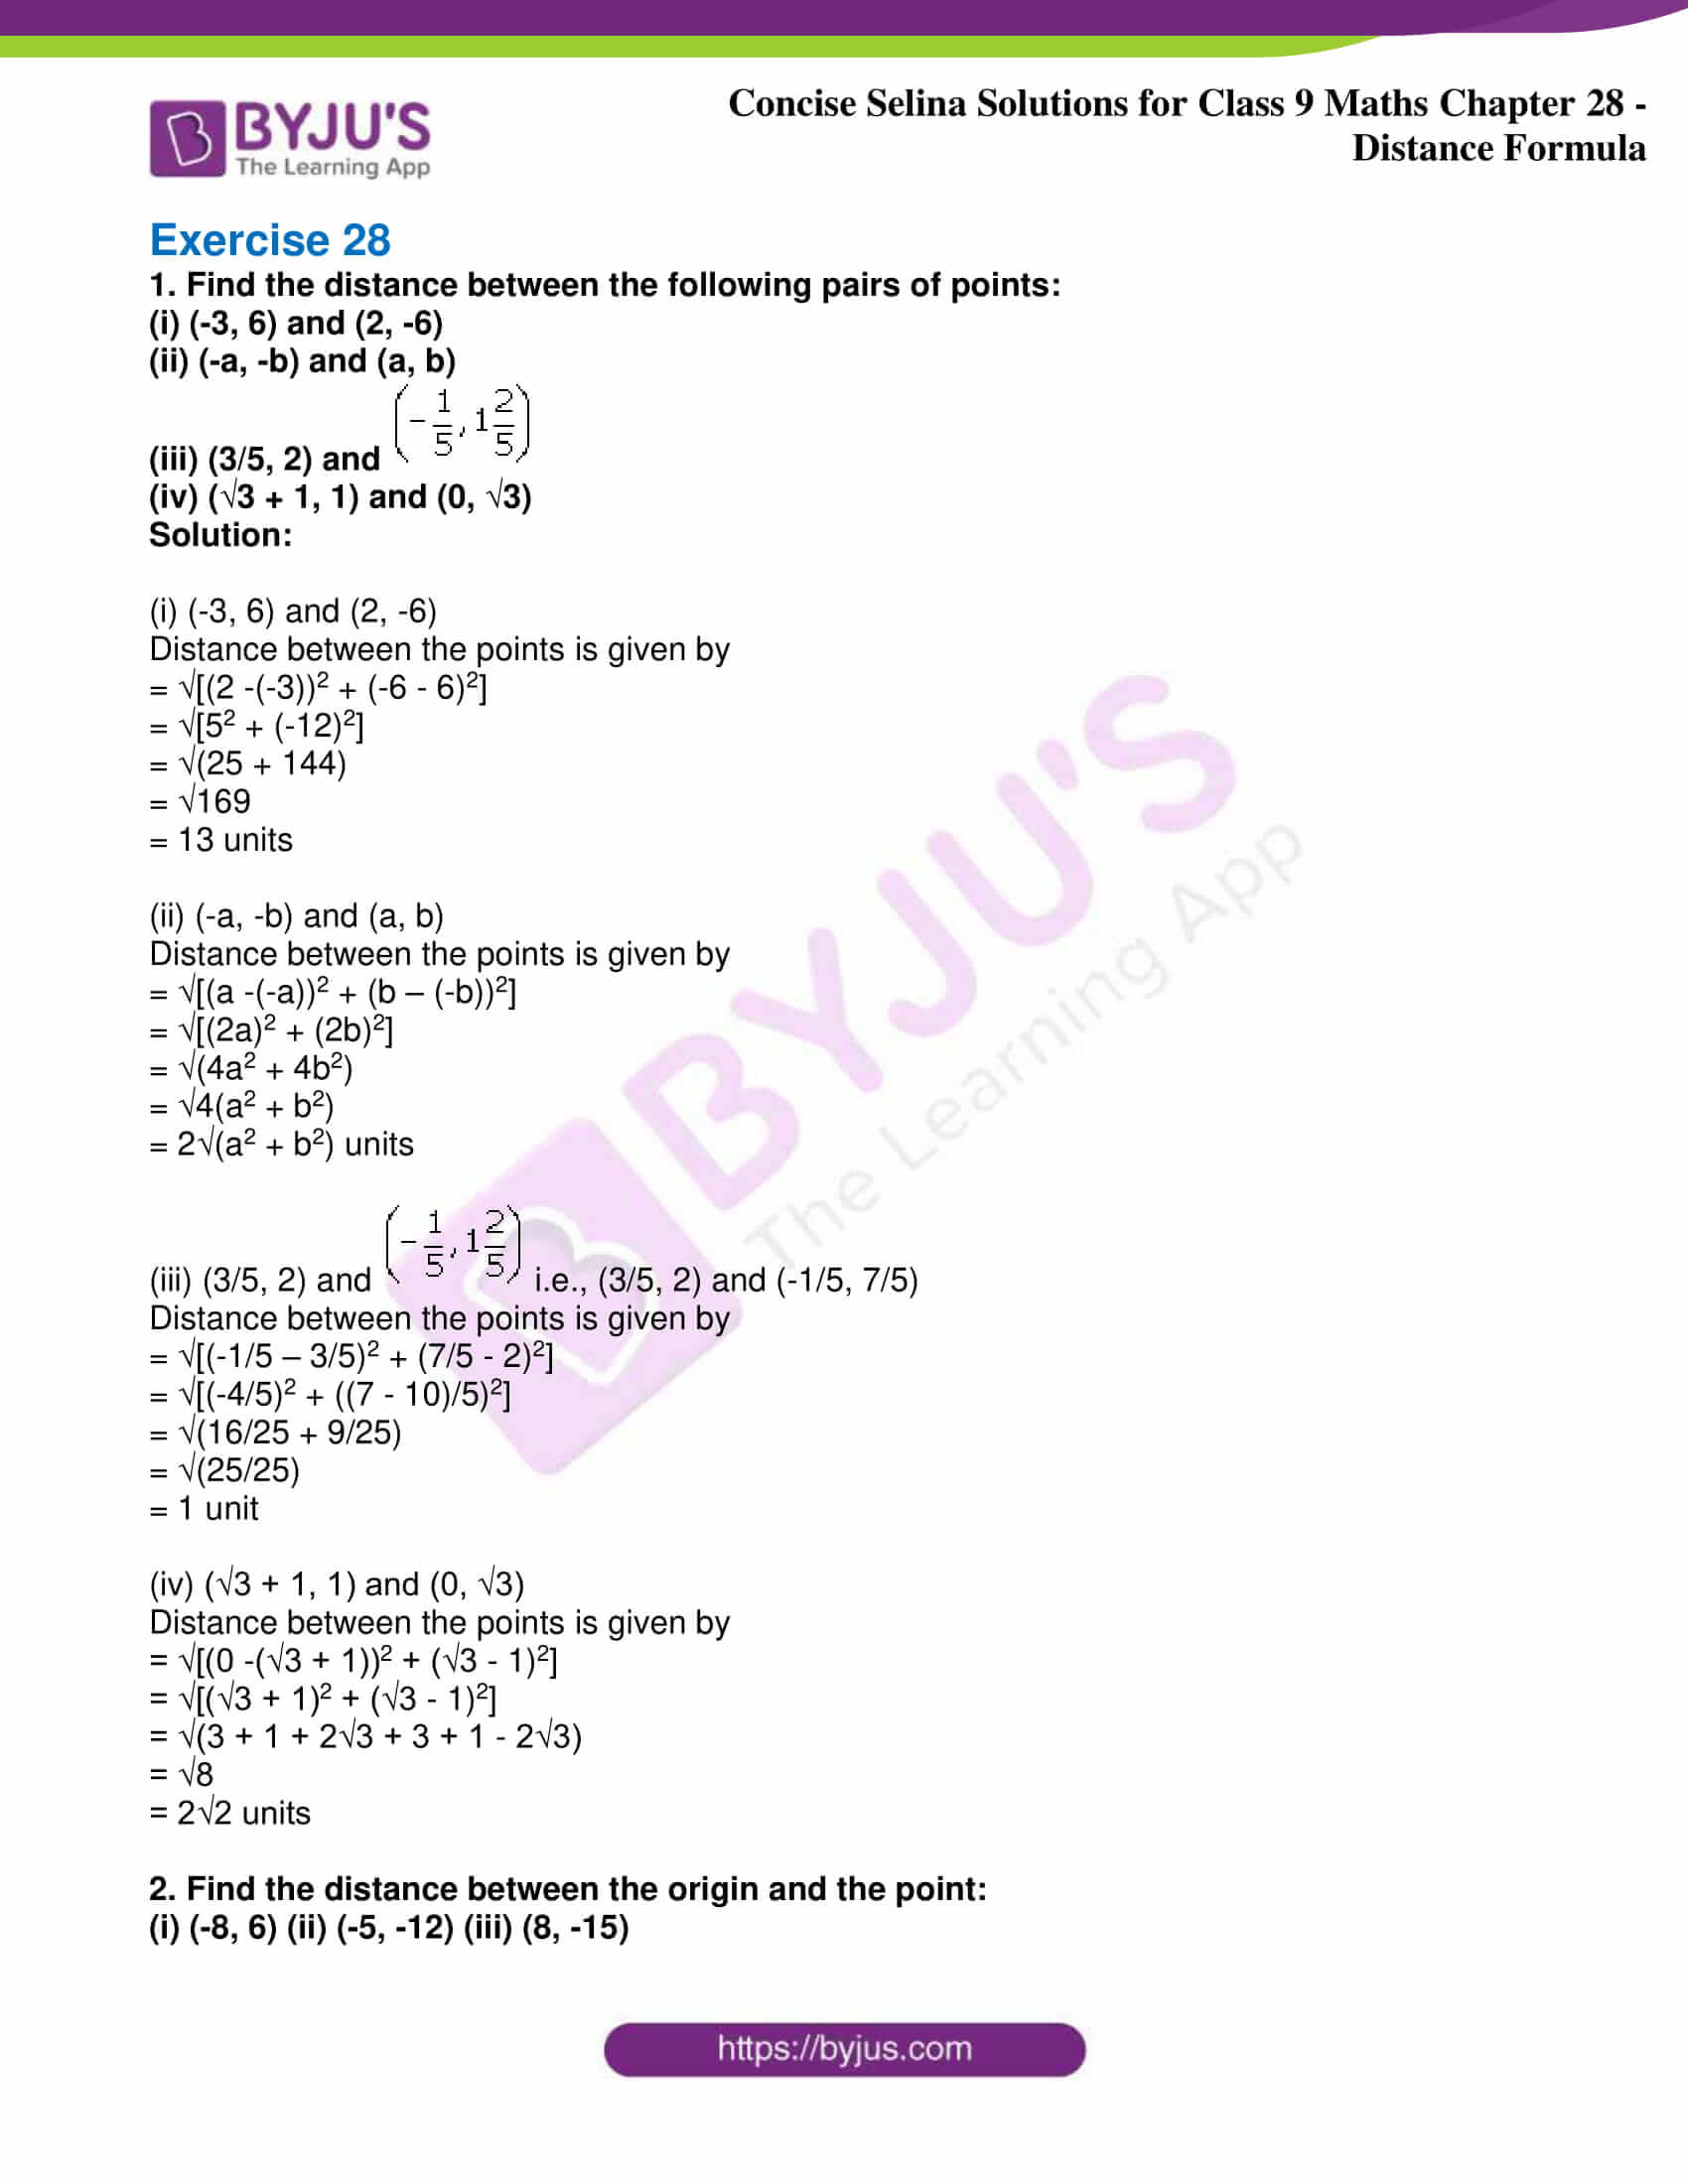 icse class 9 maths may10 selina solutions chapter 28 distance formula 01